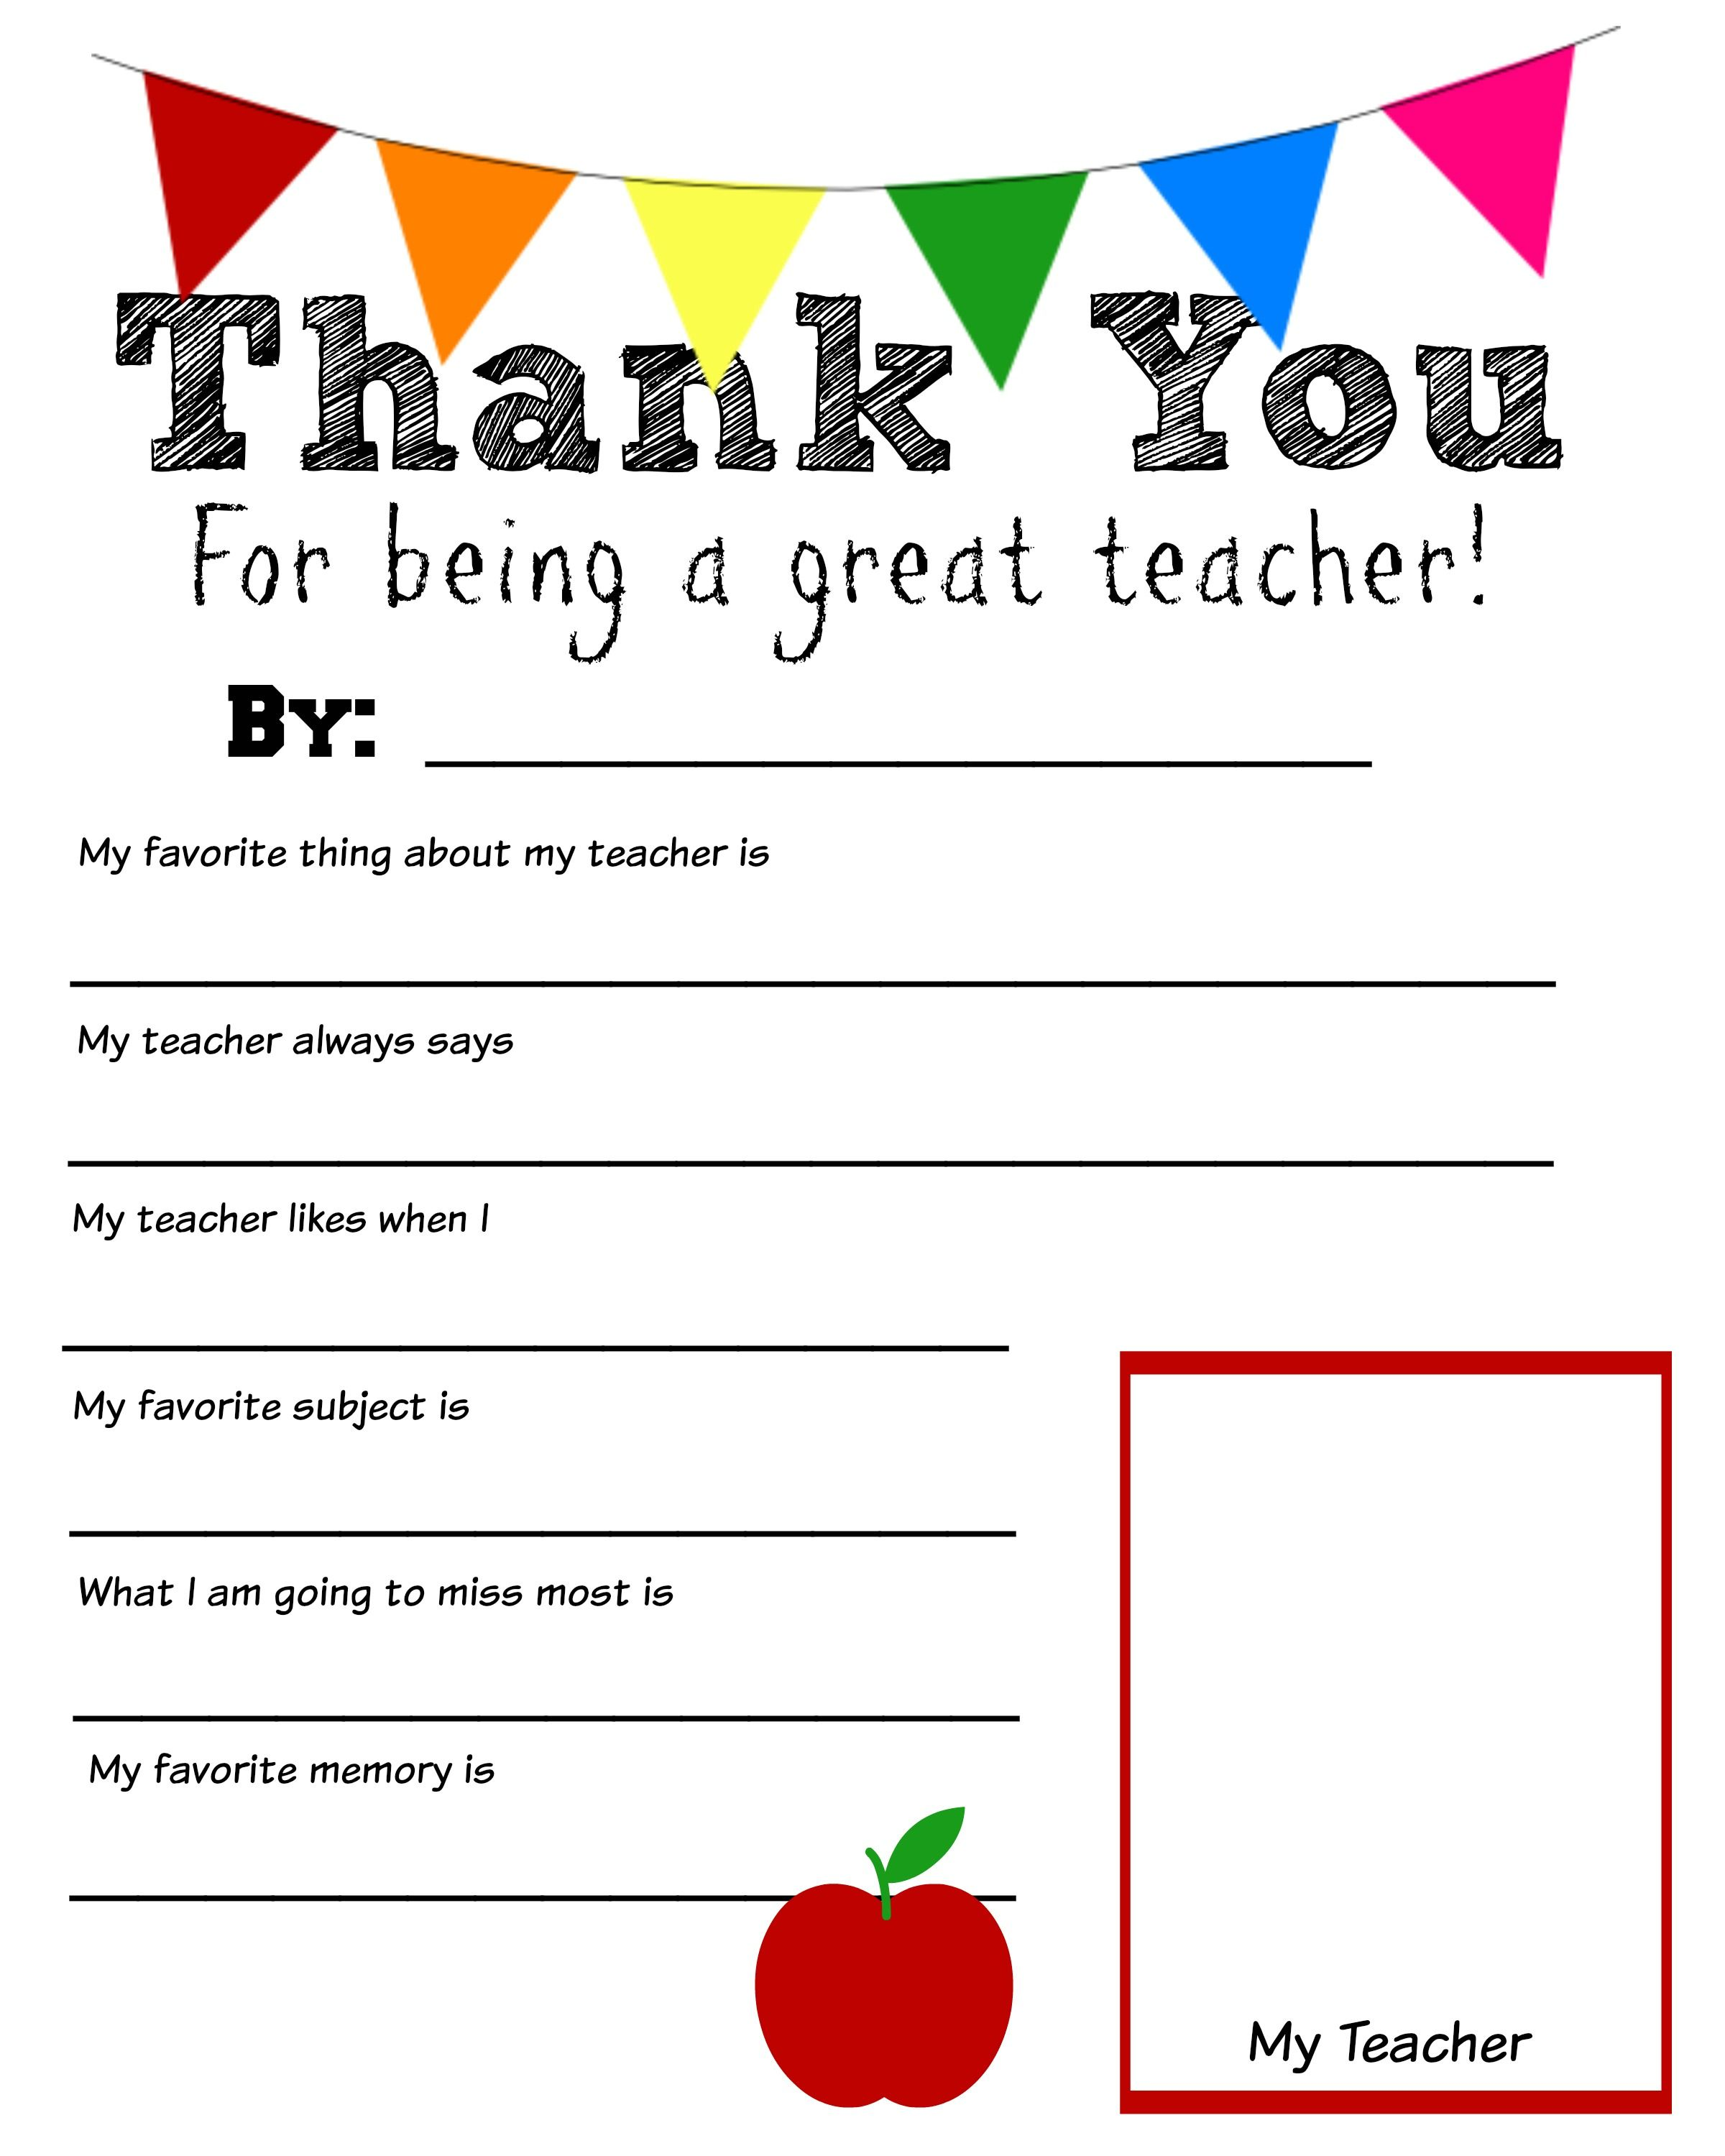 Insane image intended for free printable teacher appreciation cards